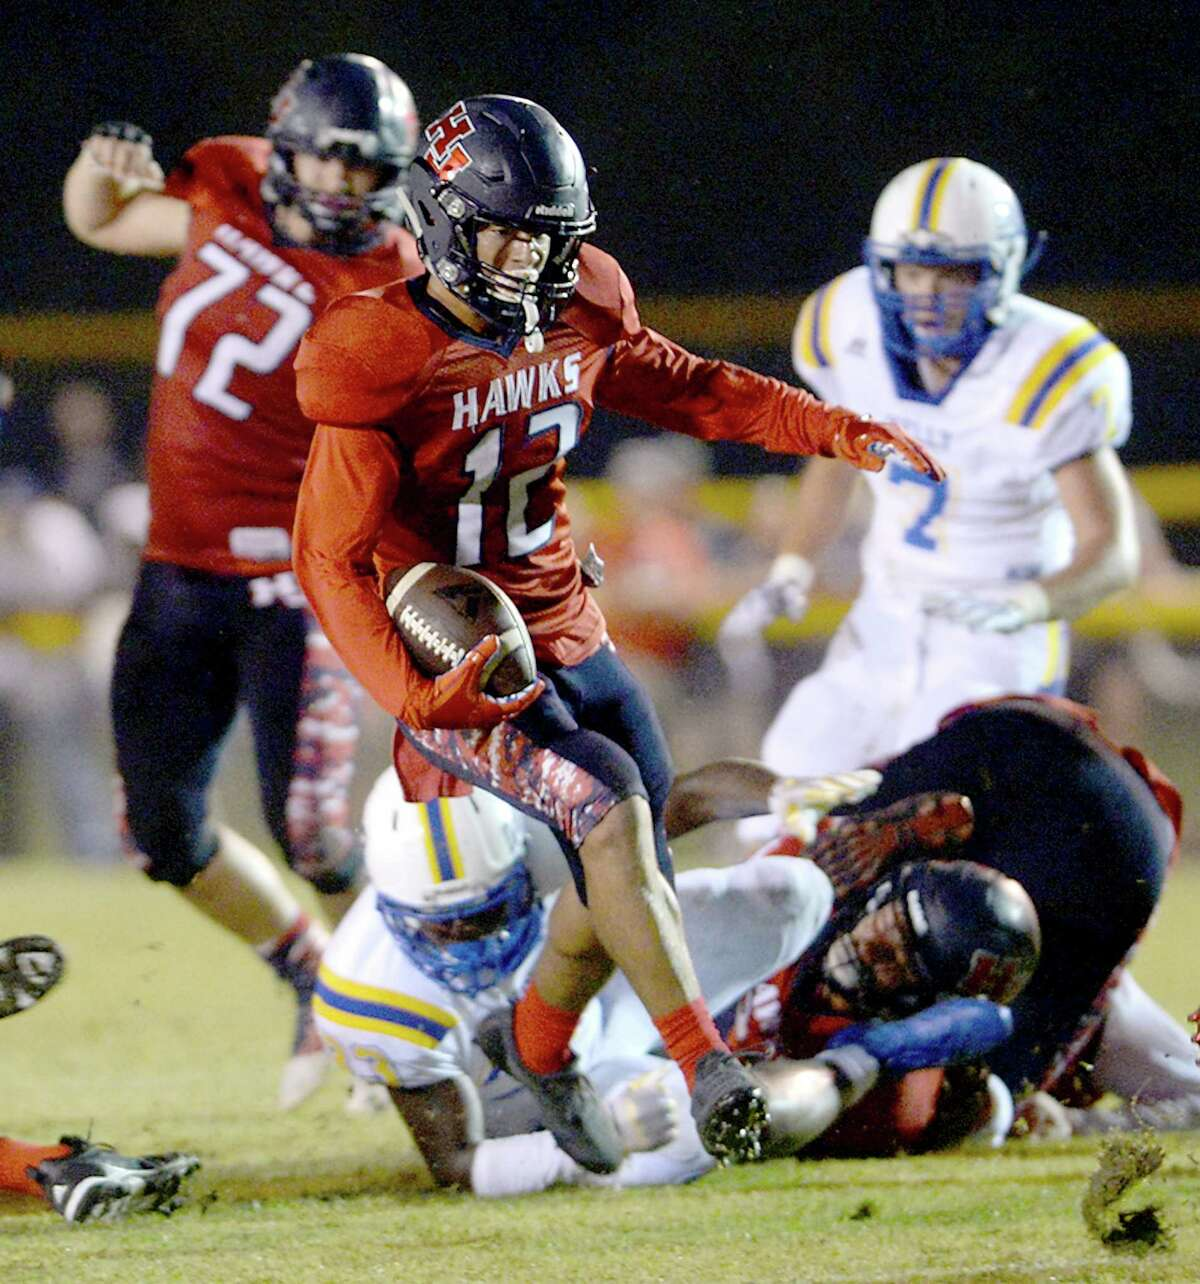 Mason Murray School: Hardin-Jefferson Position: WR/RB Notes: Murray had almost 100 total yards and a pair of touchdowns against two-time defending state champions West Orange-Stark last week. At 0-1, the Hawks need a win against Orangefield to put themselves in a better spot to make the playoffs and Murray will play a big role in that success.